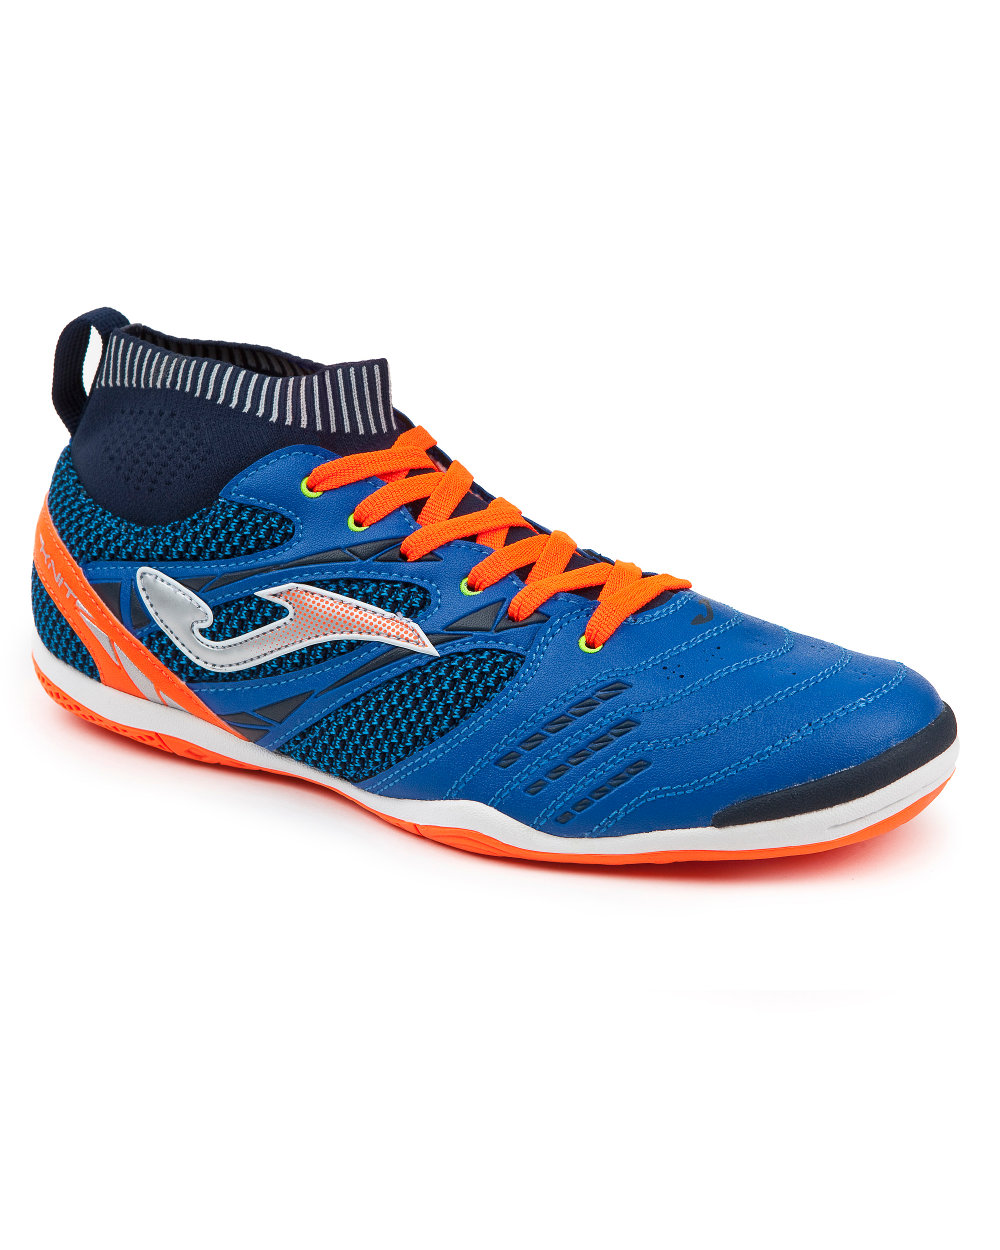 e682be09792d Football shoes Joma Football shoes knit 805 with sock Blau Indoor ...